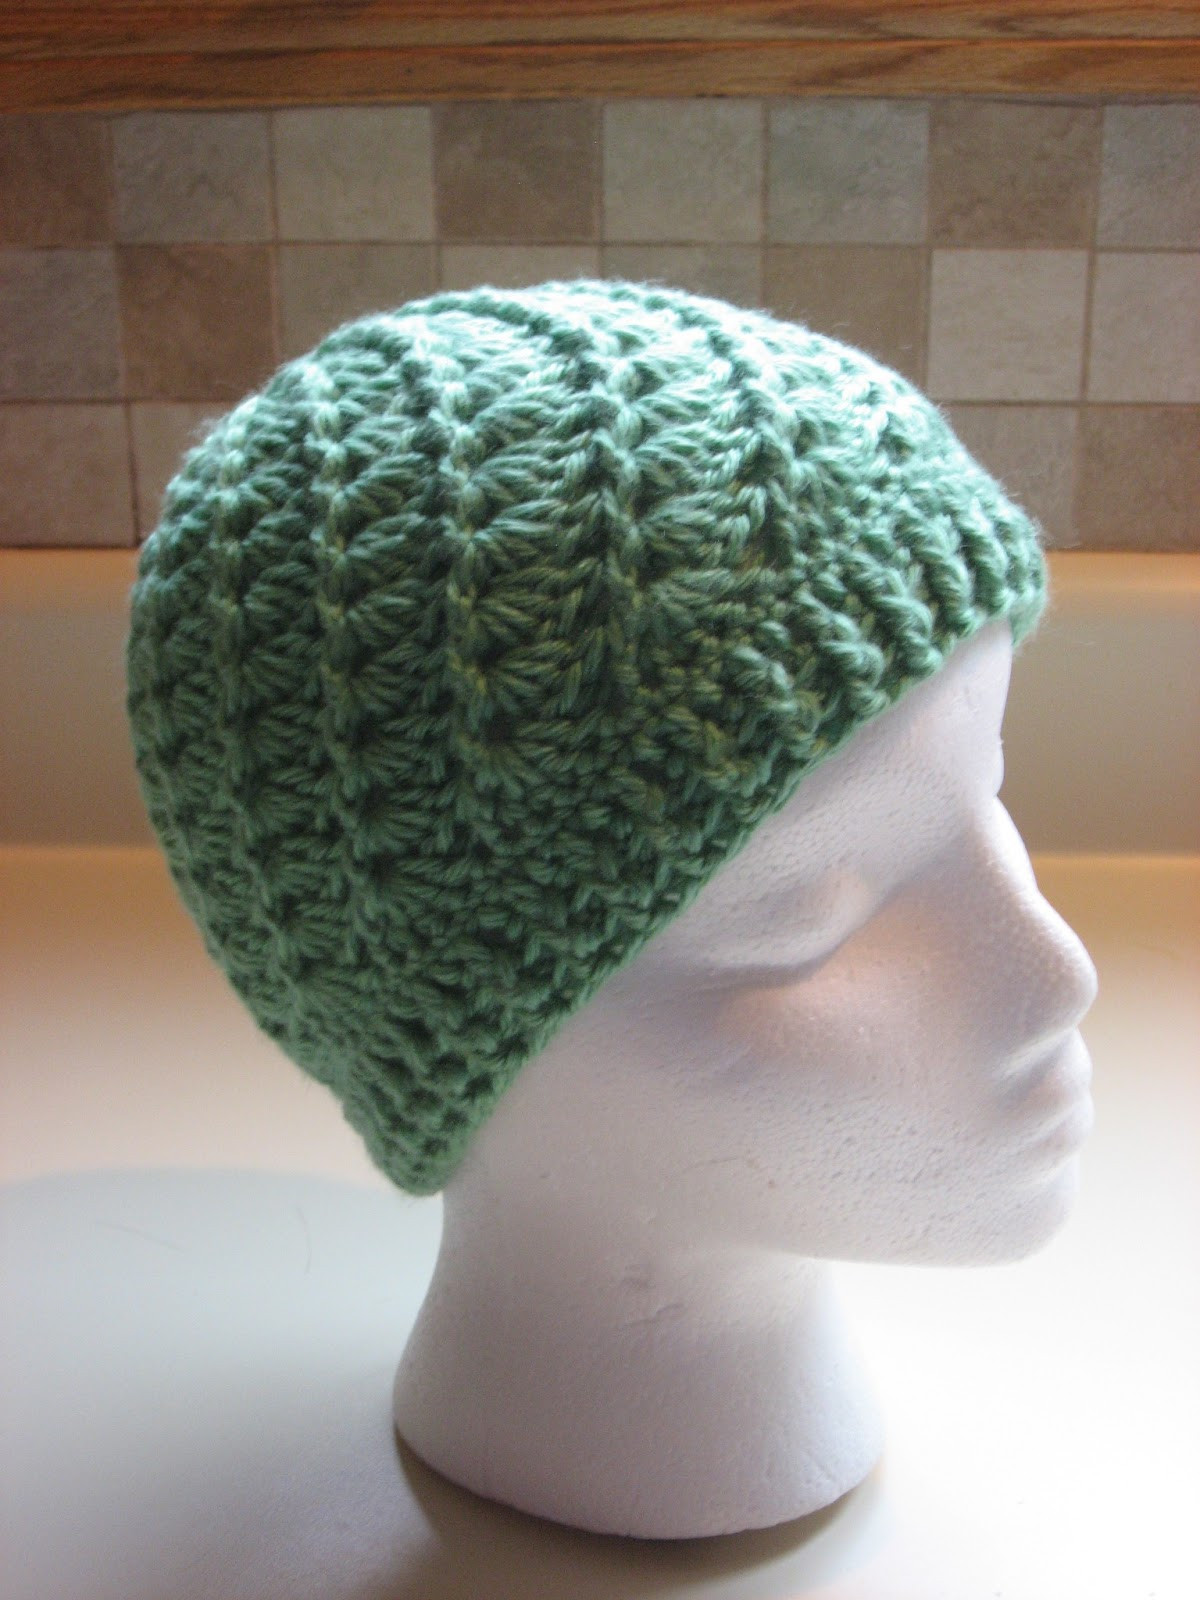 Beautiful Crochet Projects More Chemo Hats Crochet Chemo Hats Of Adorable 42 Images Crochet Chemo Hats